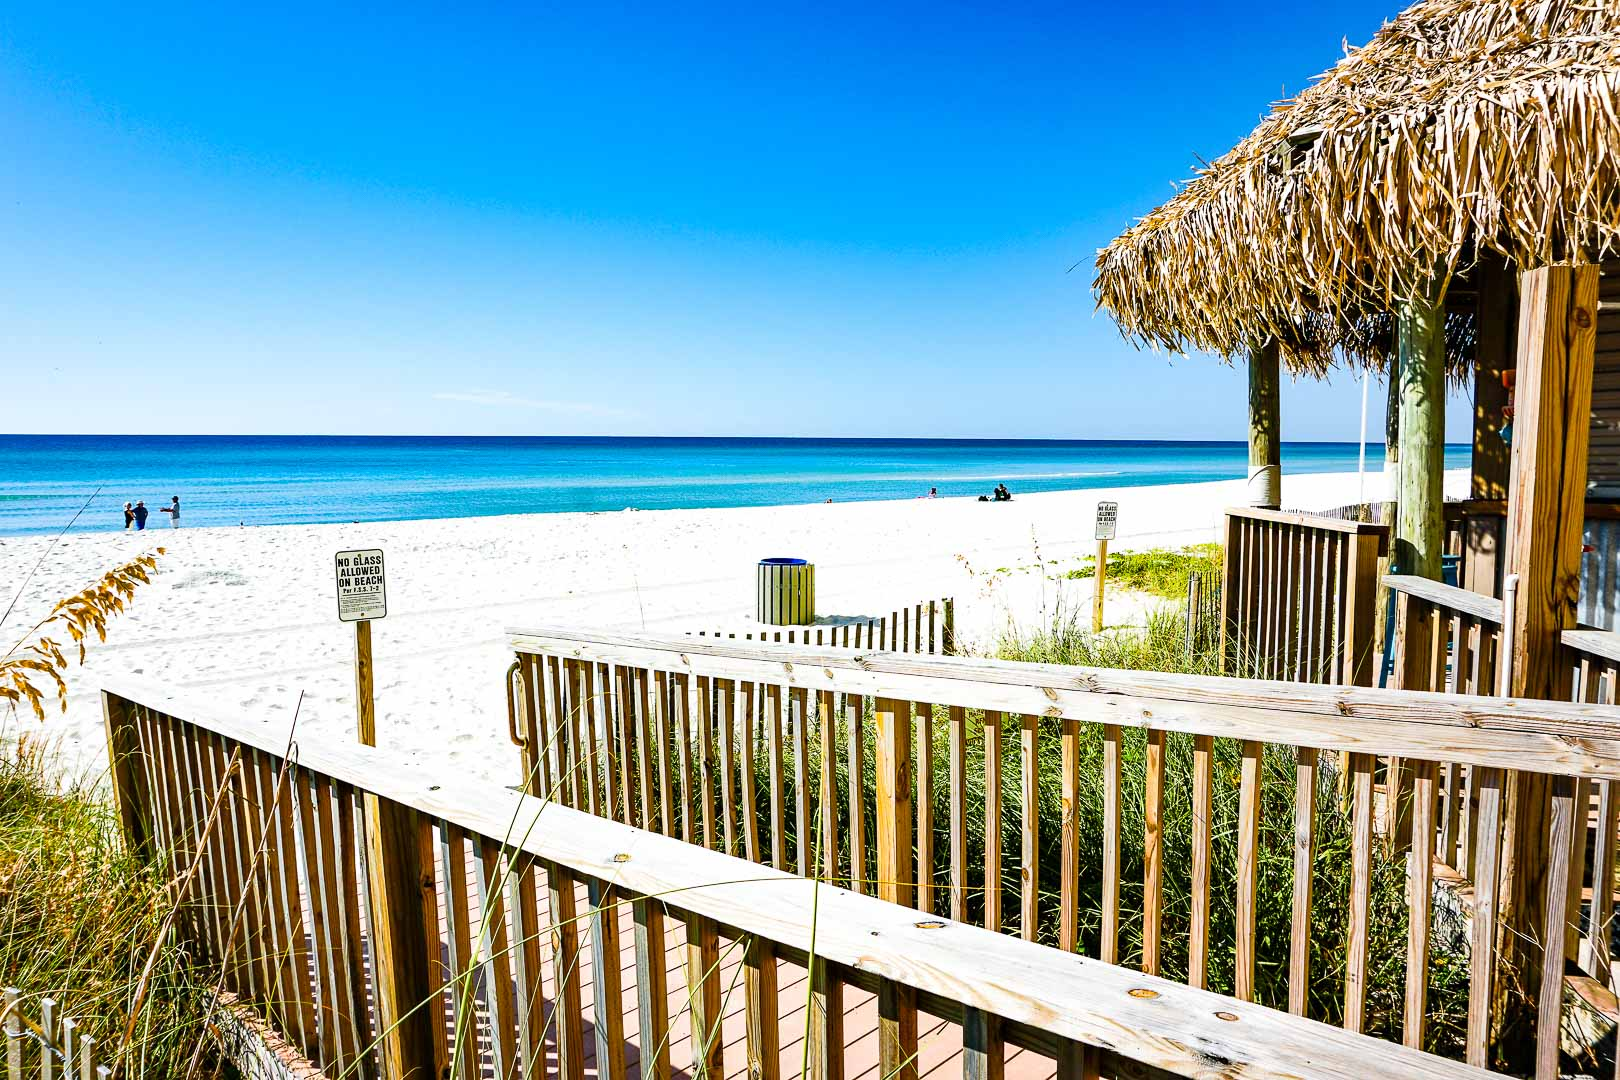 Access to the beach at VRI's Landmark Holiday Beach Resort in Panama City, Florida.